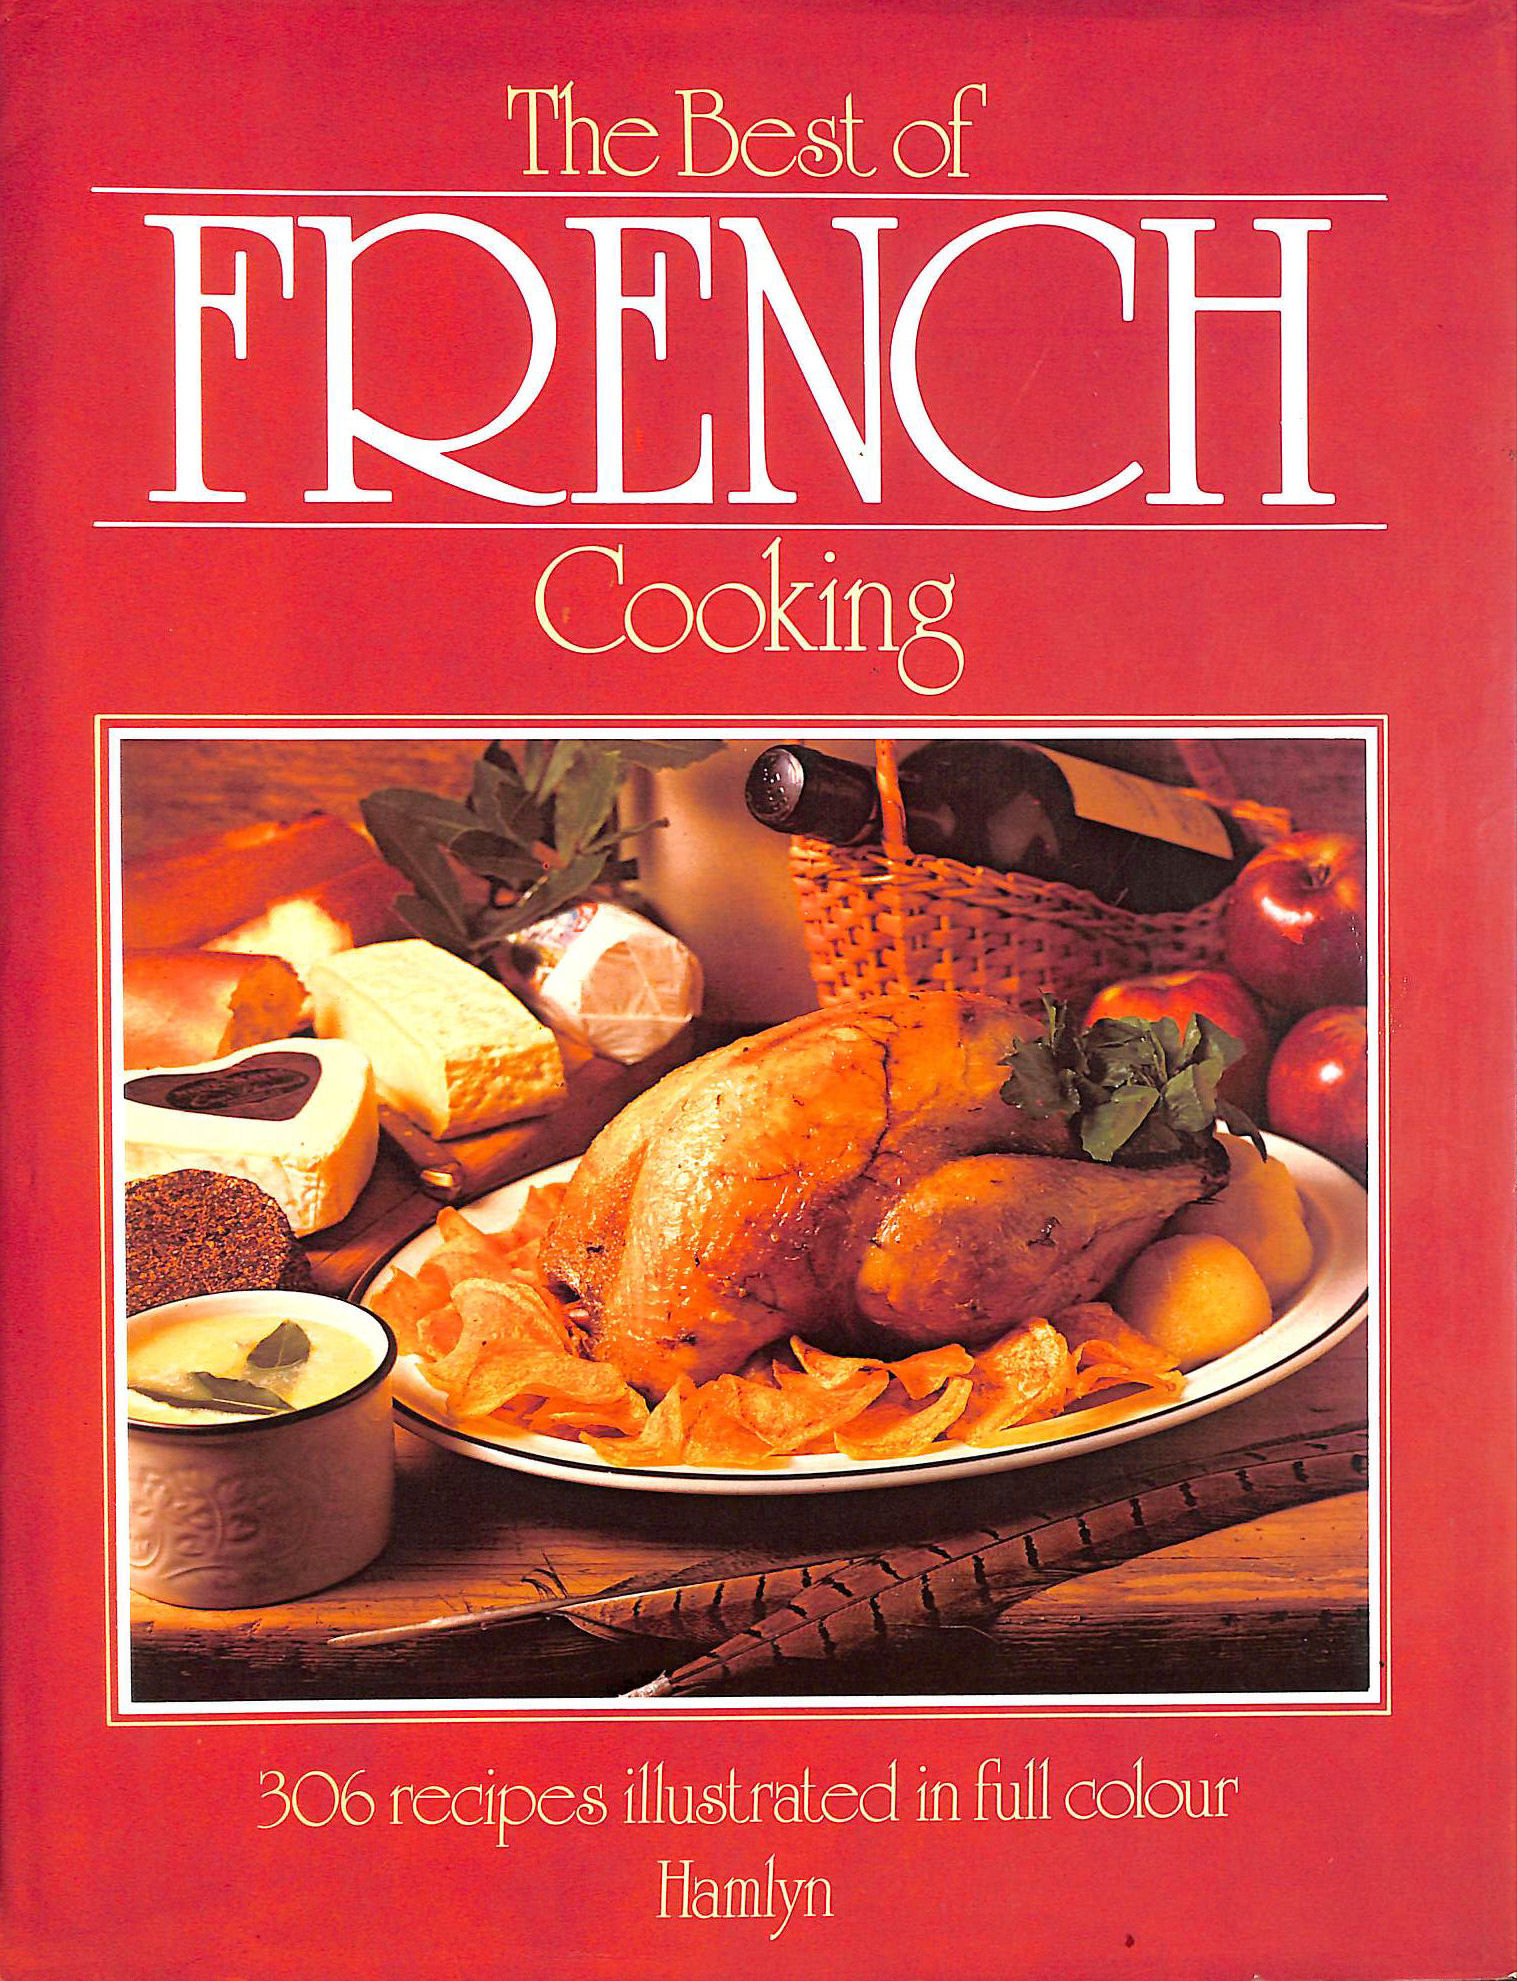 Image for Best of French Cooking, The